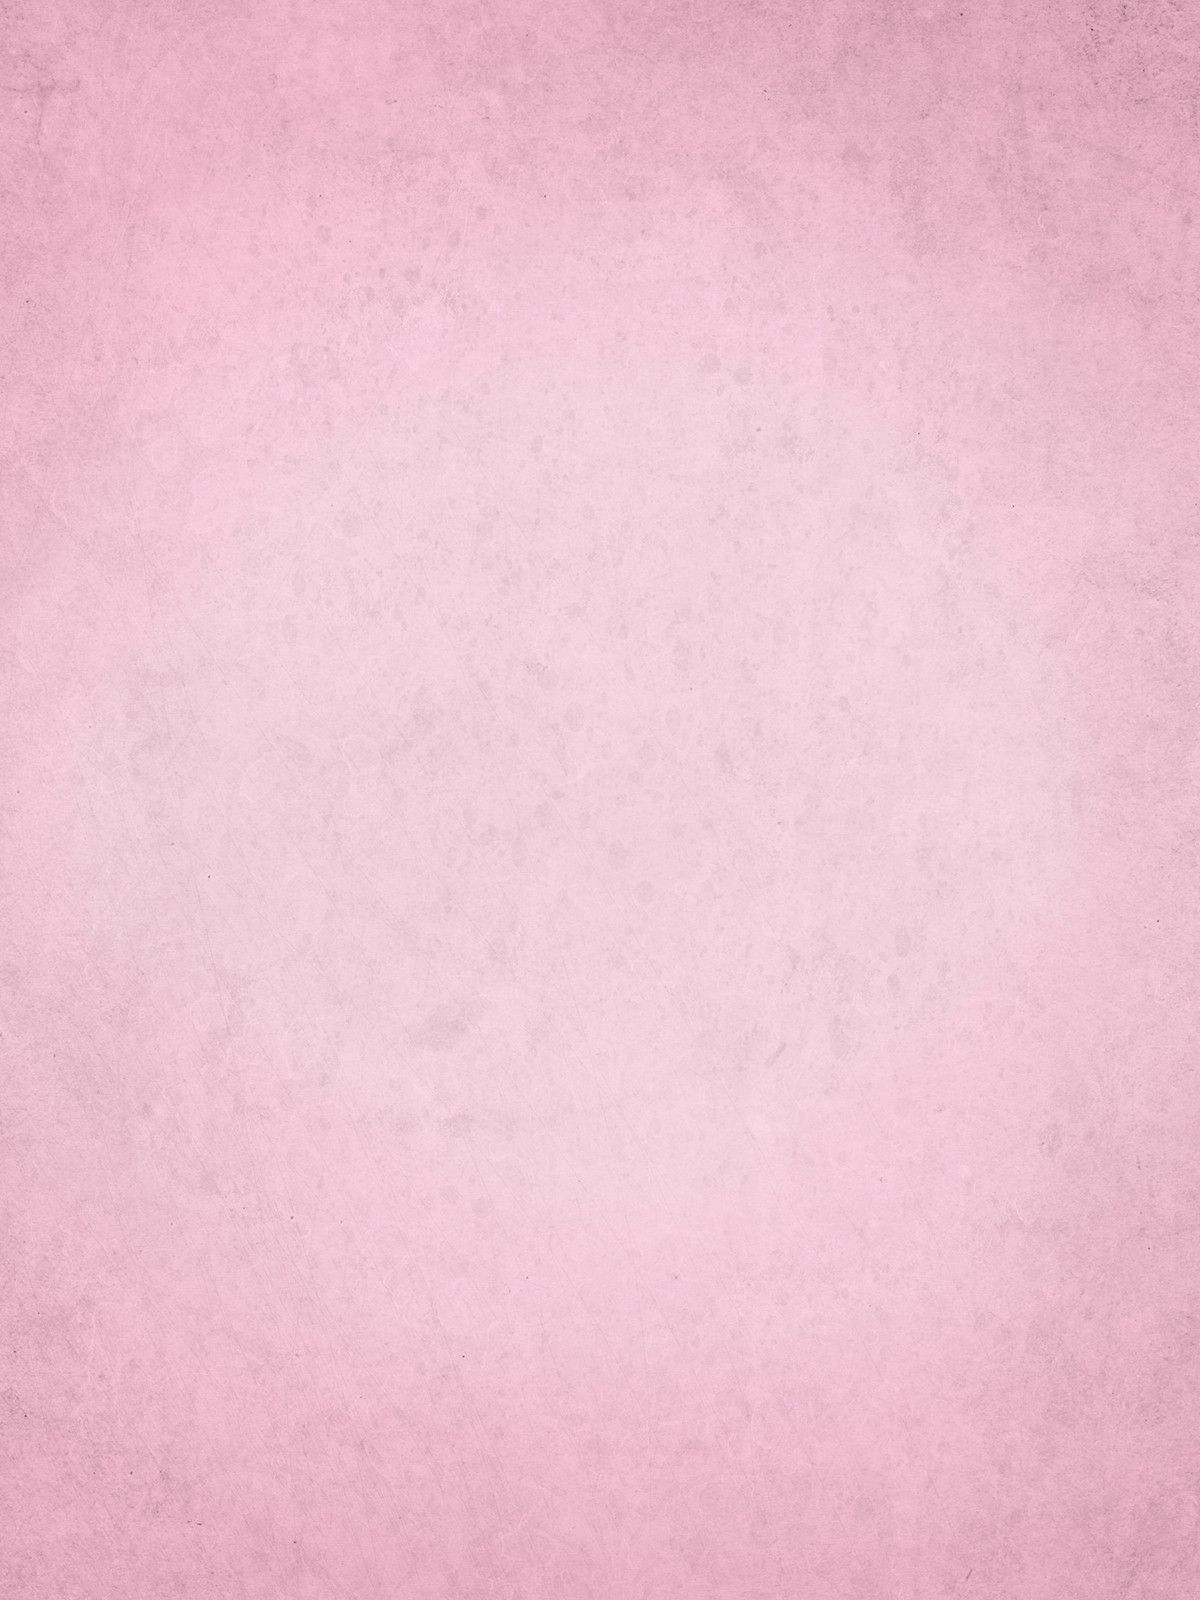 Pink Solid Texture Printed Photo Background 9046